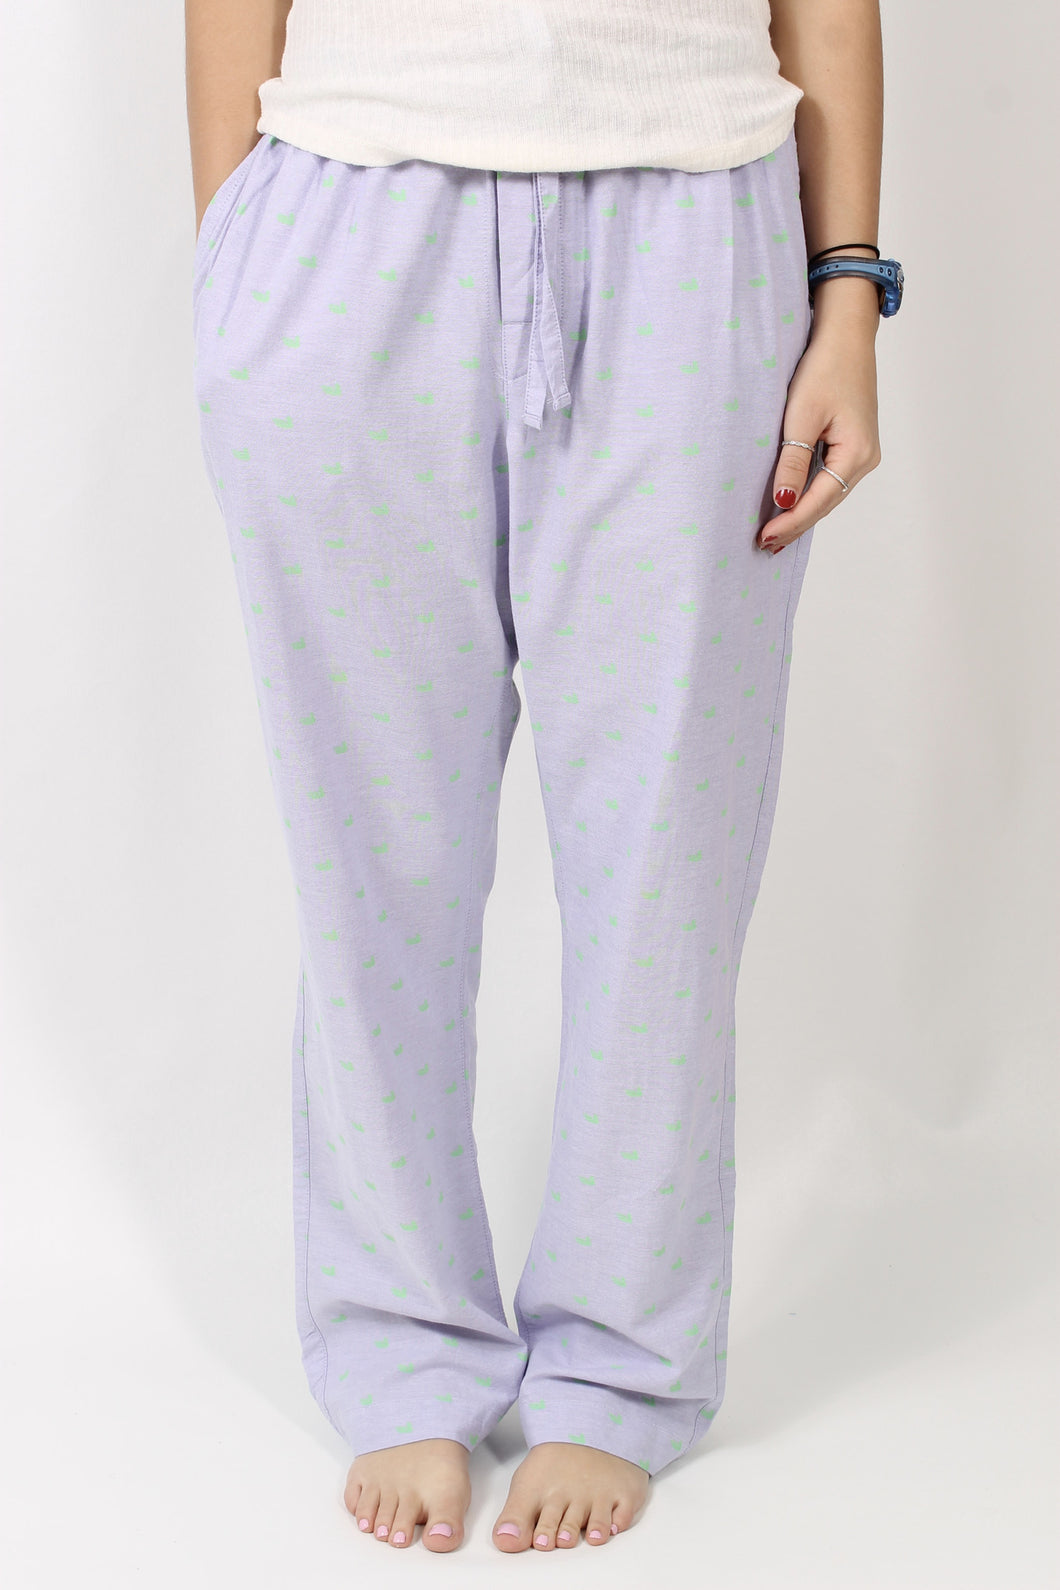 Wharf Purple with Lime Ducks PJs- Southern Marsh Savannah Oxford Lounge Pant Front